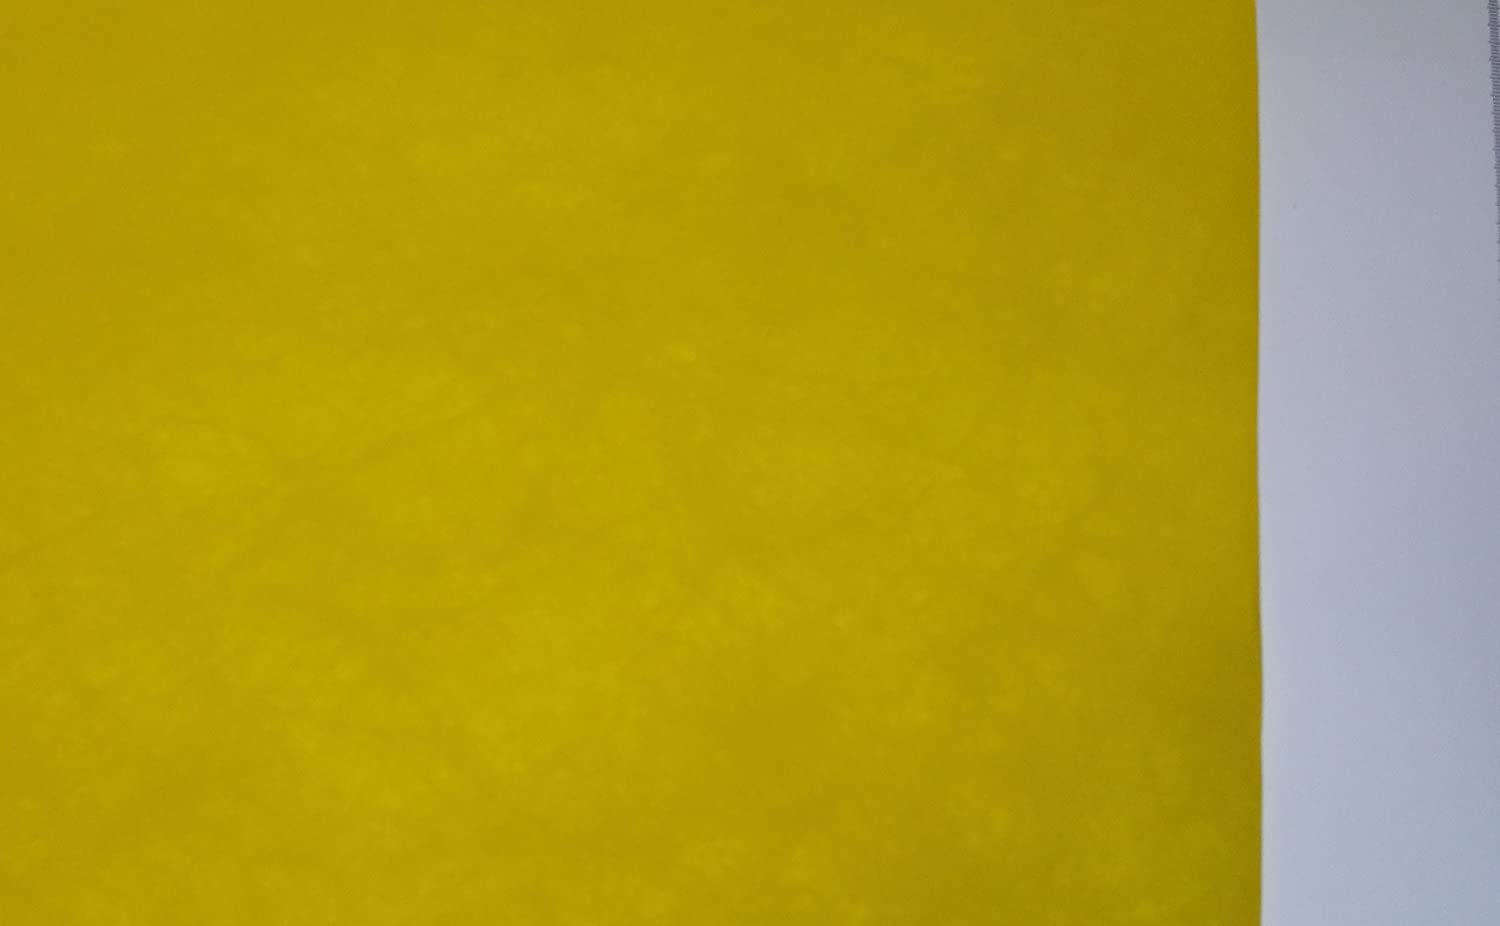 TYVEK GRAPHICS 1073D ( 90 GSM PRINTED WEIGHT) YELLOW BOTH SIDES 10 x A4 sheets